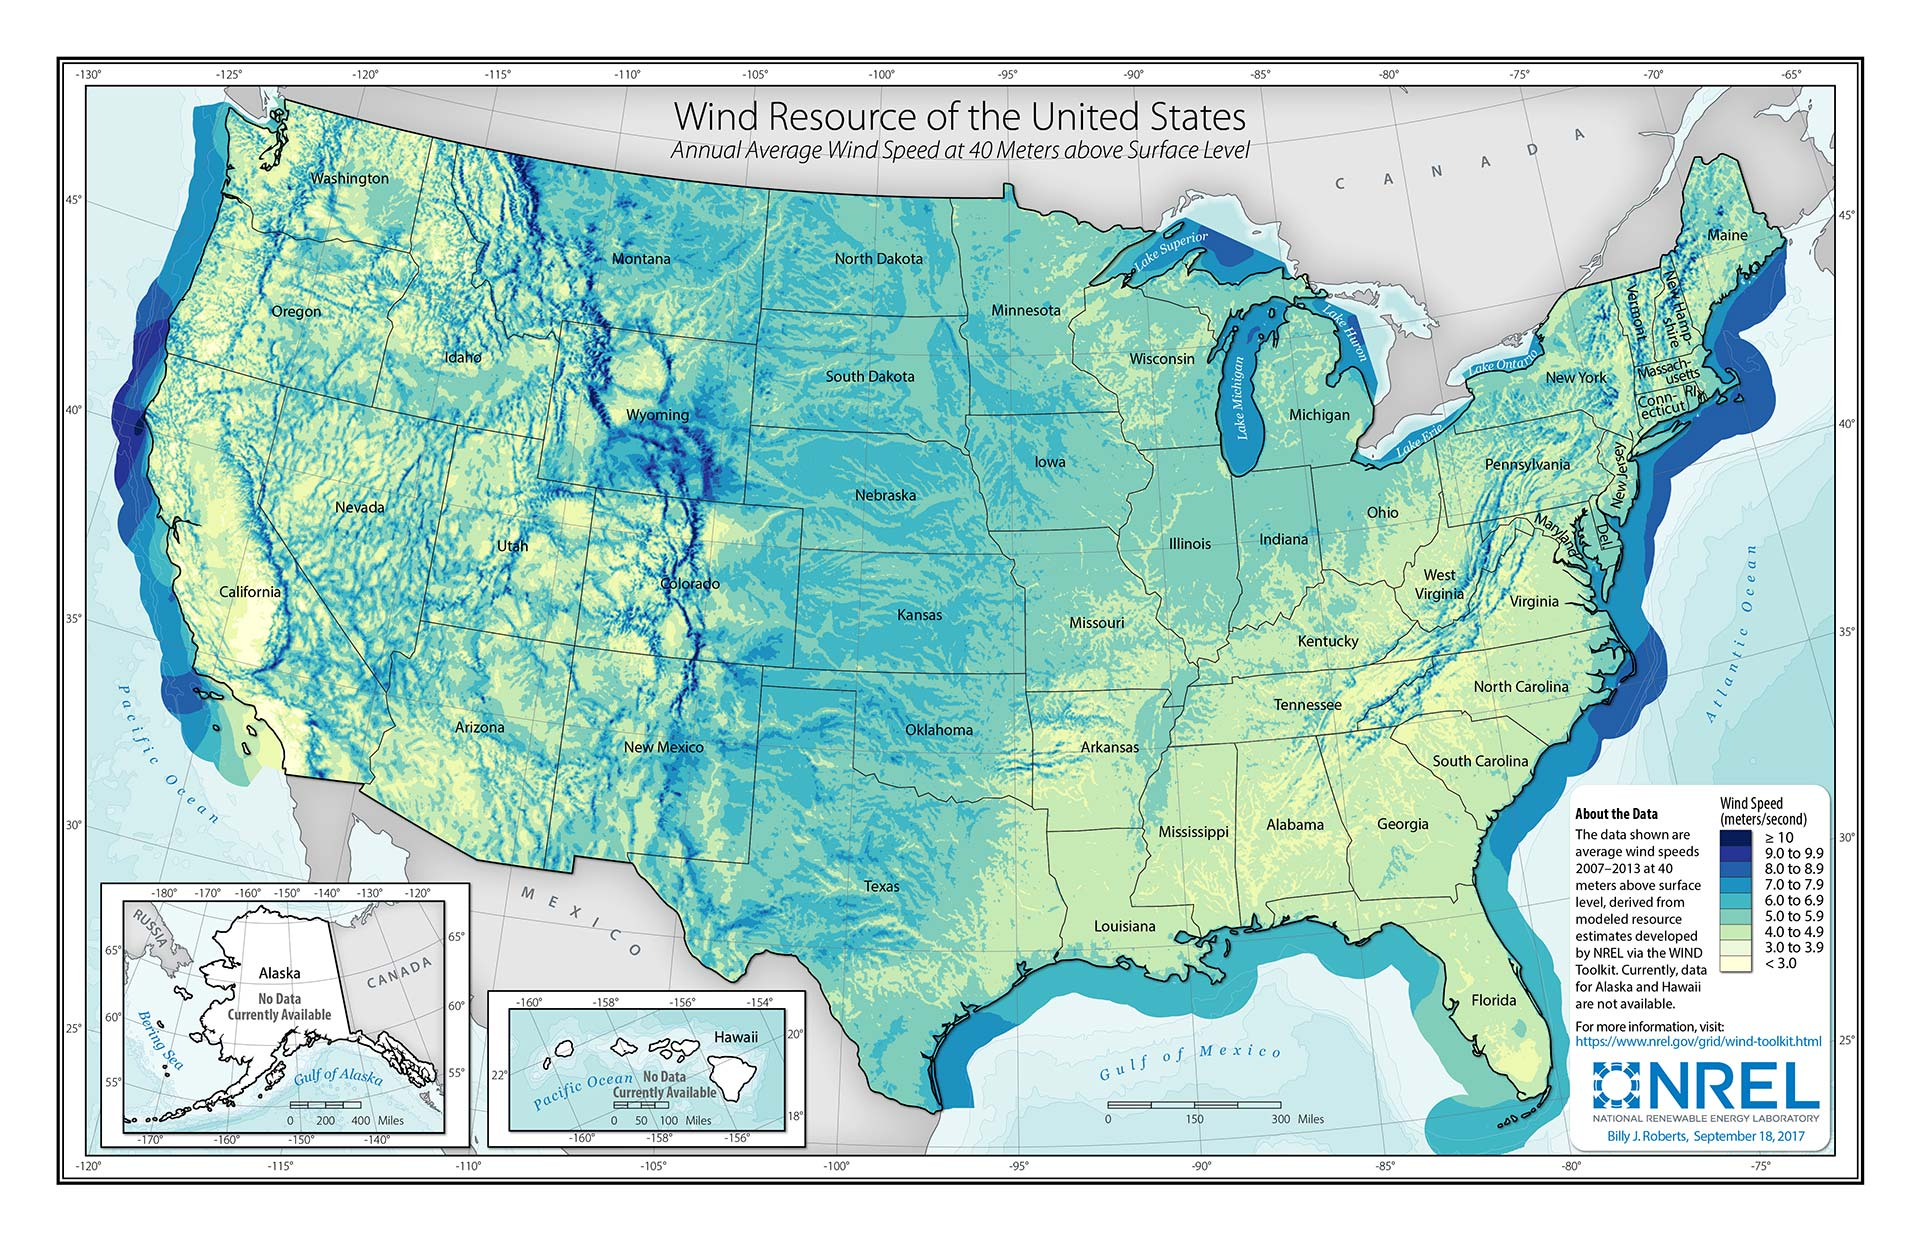 Map of the United States showing wind speed at 40 meters above surface level